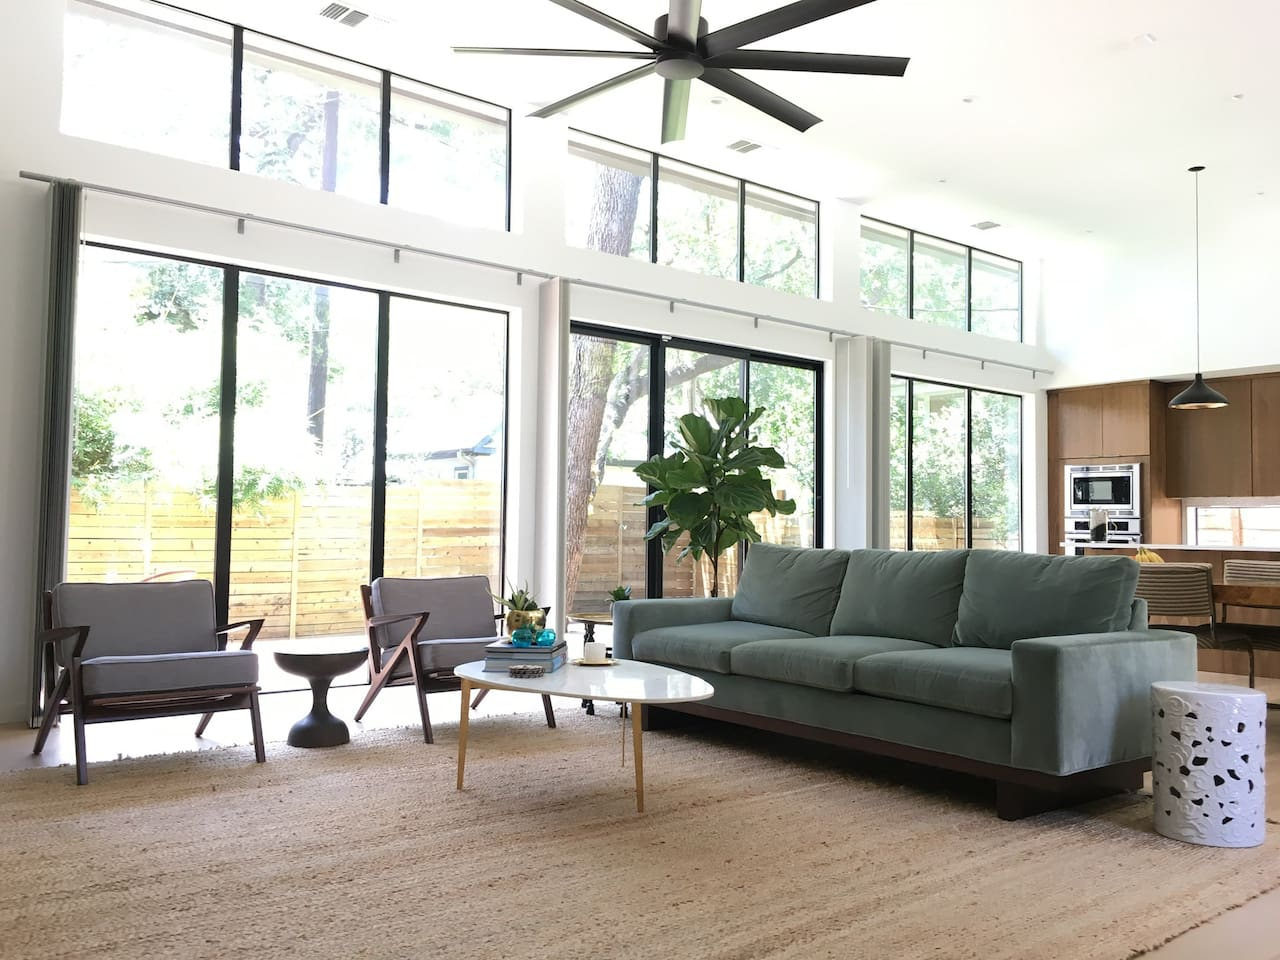 Bright, open-plan living area with floor to ceiling glass overlooking the private backyard and deck.